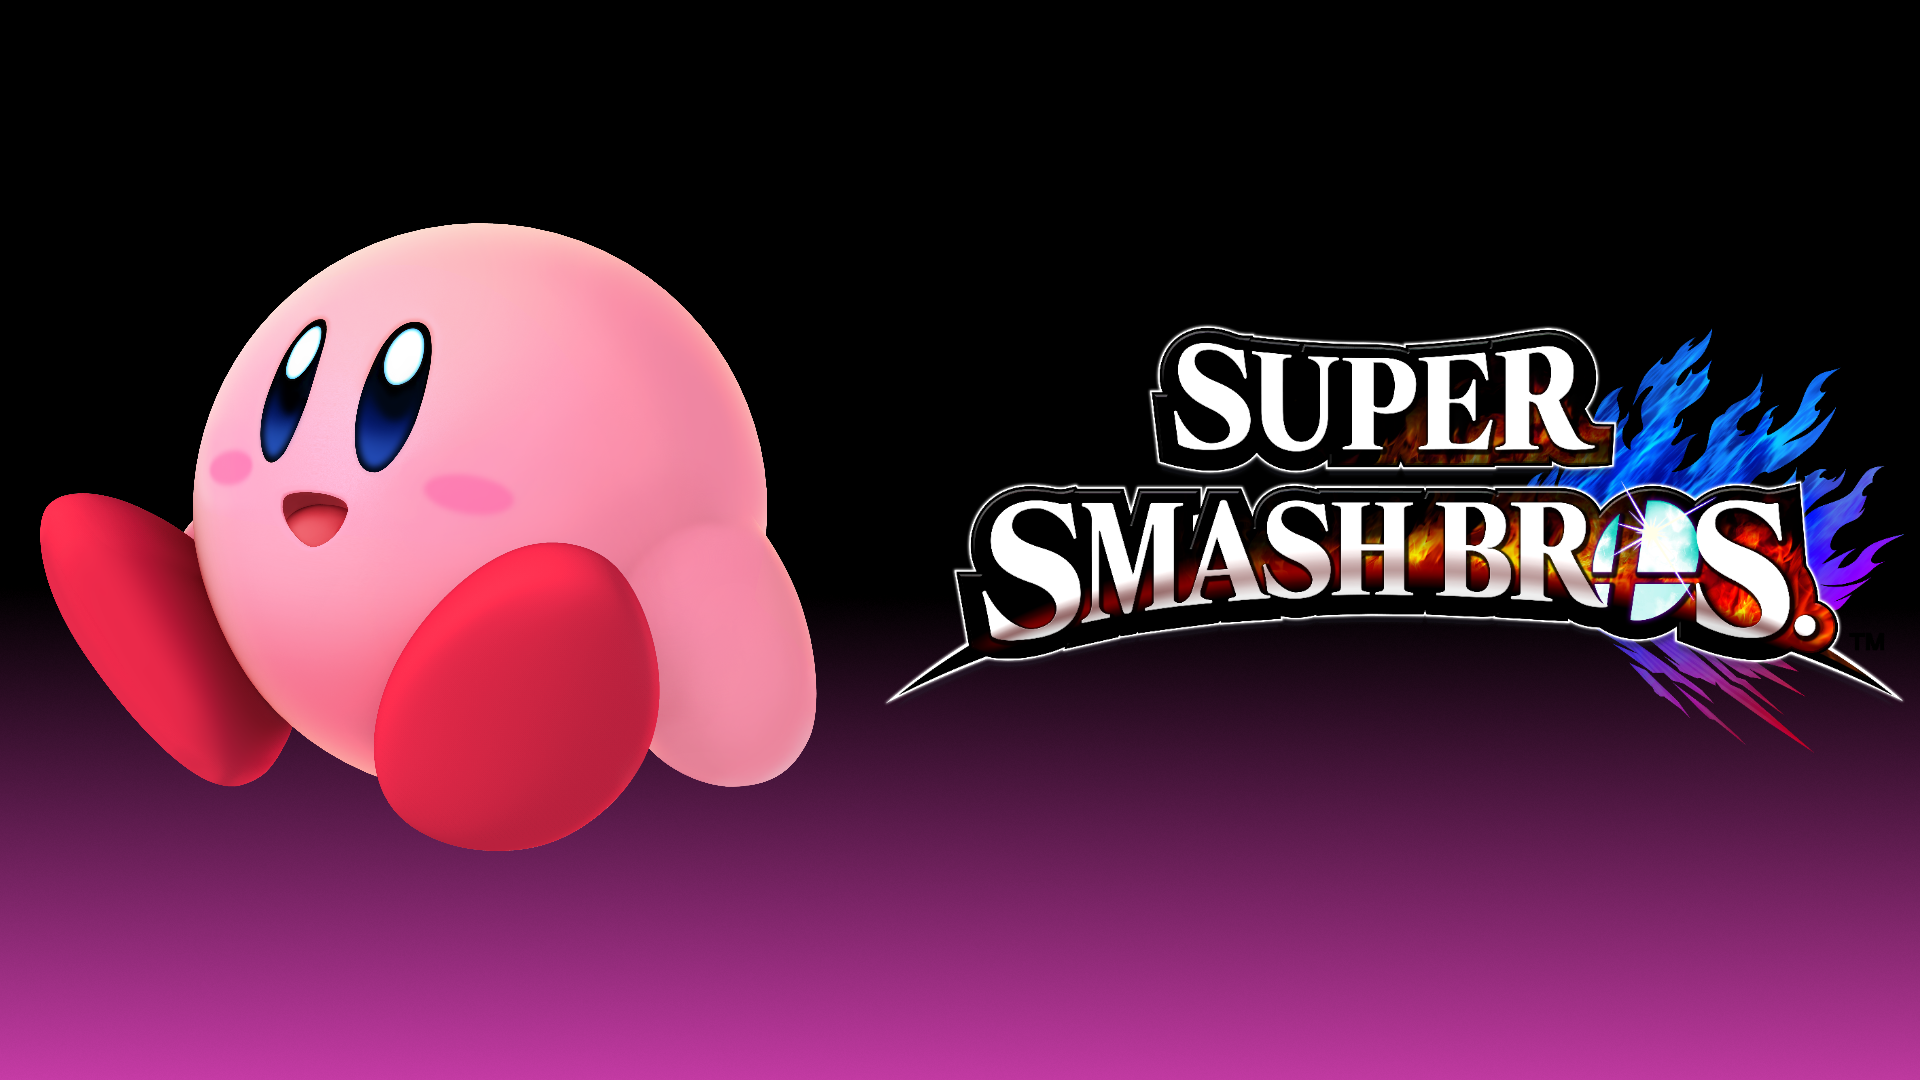 Kirby Super Smash Bros Super Smash Bros. 4 Wa...